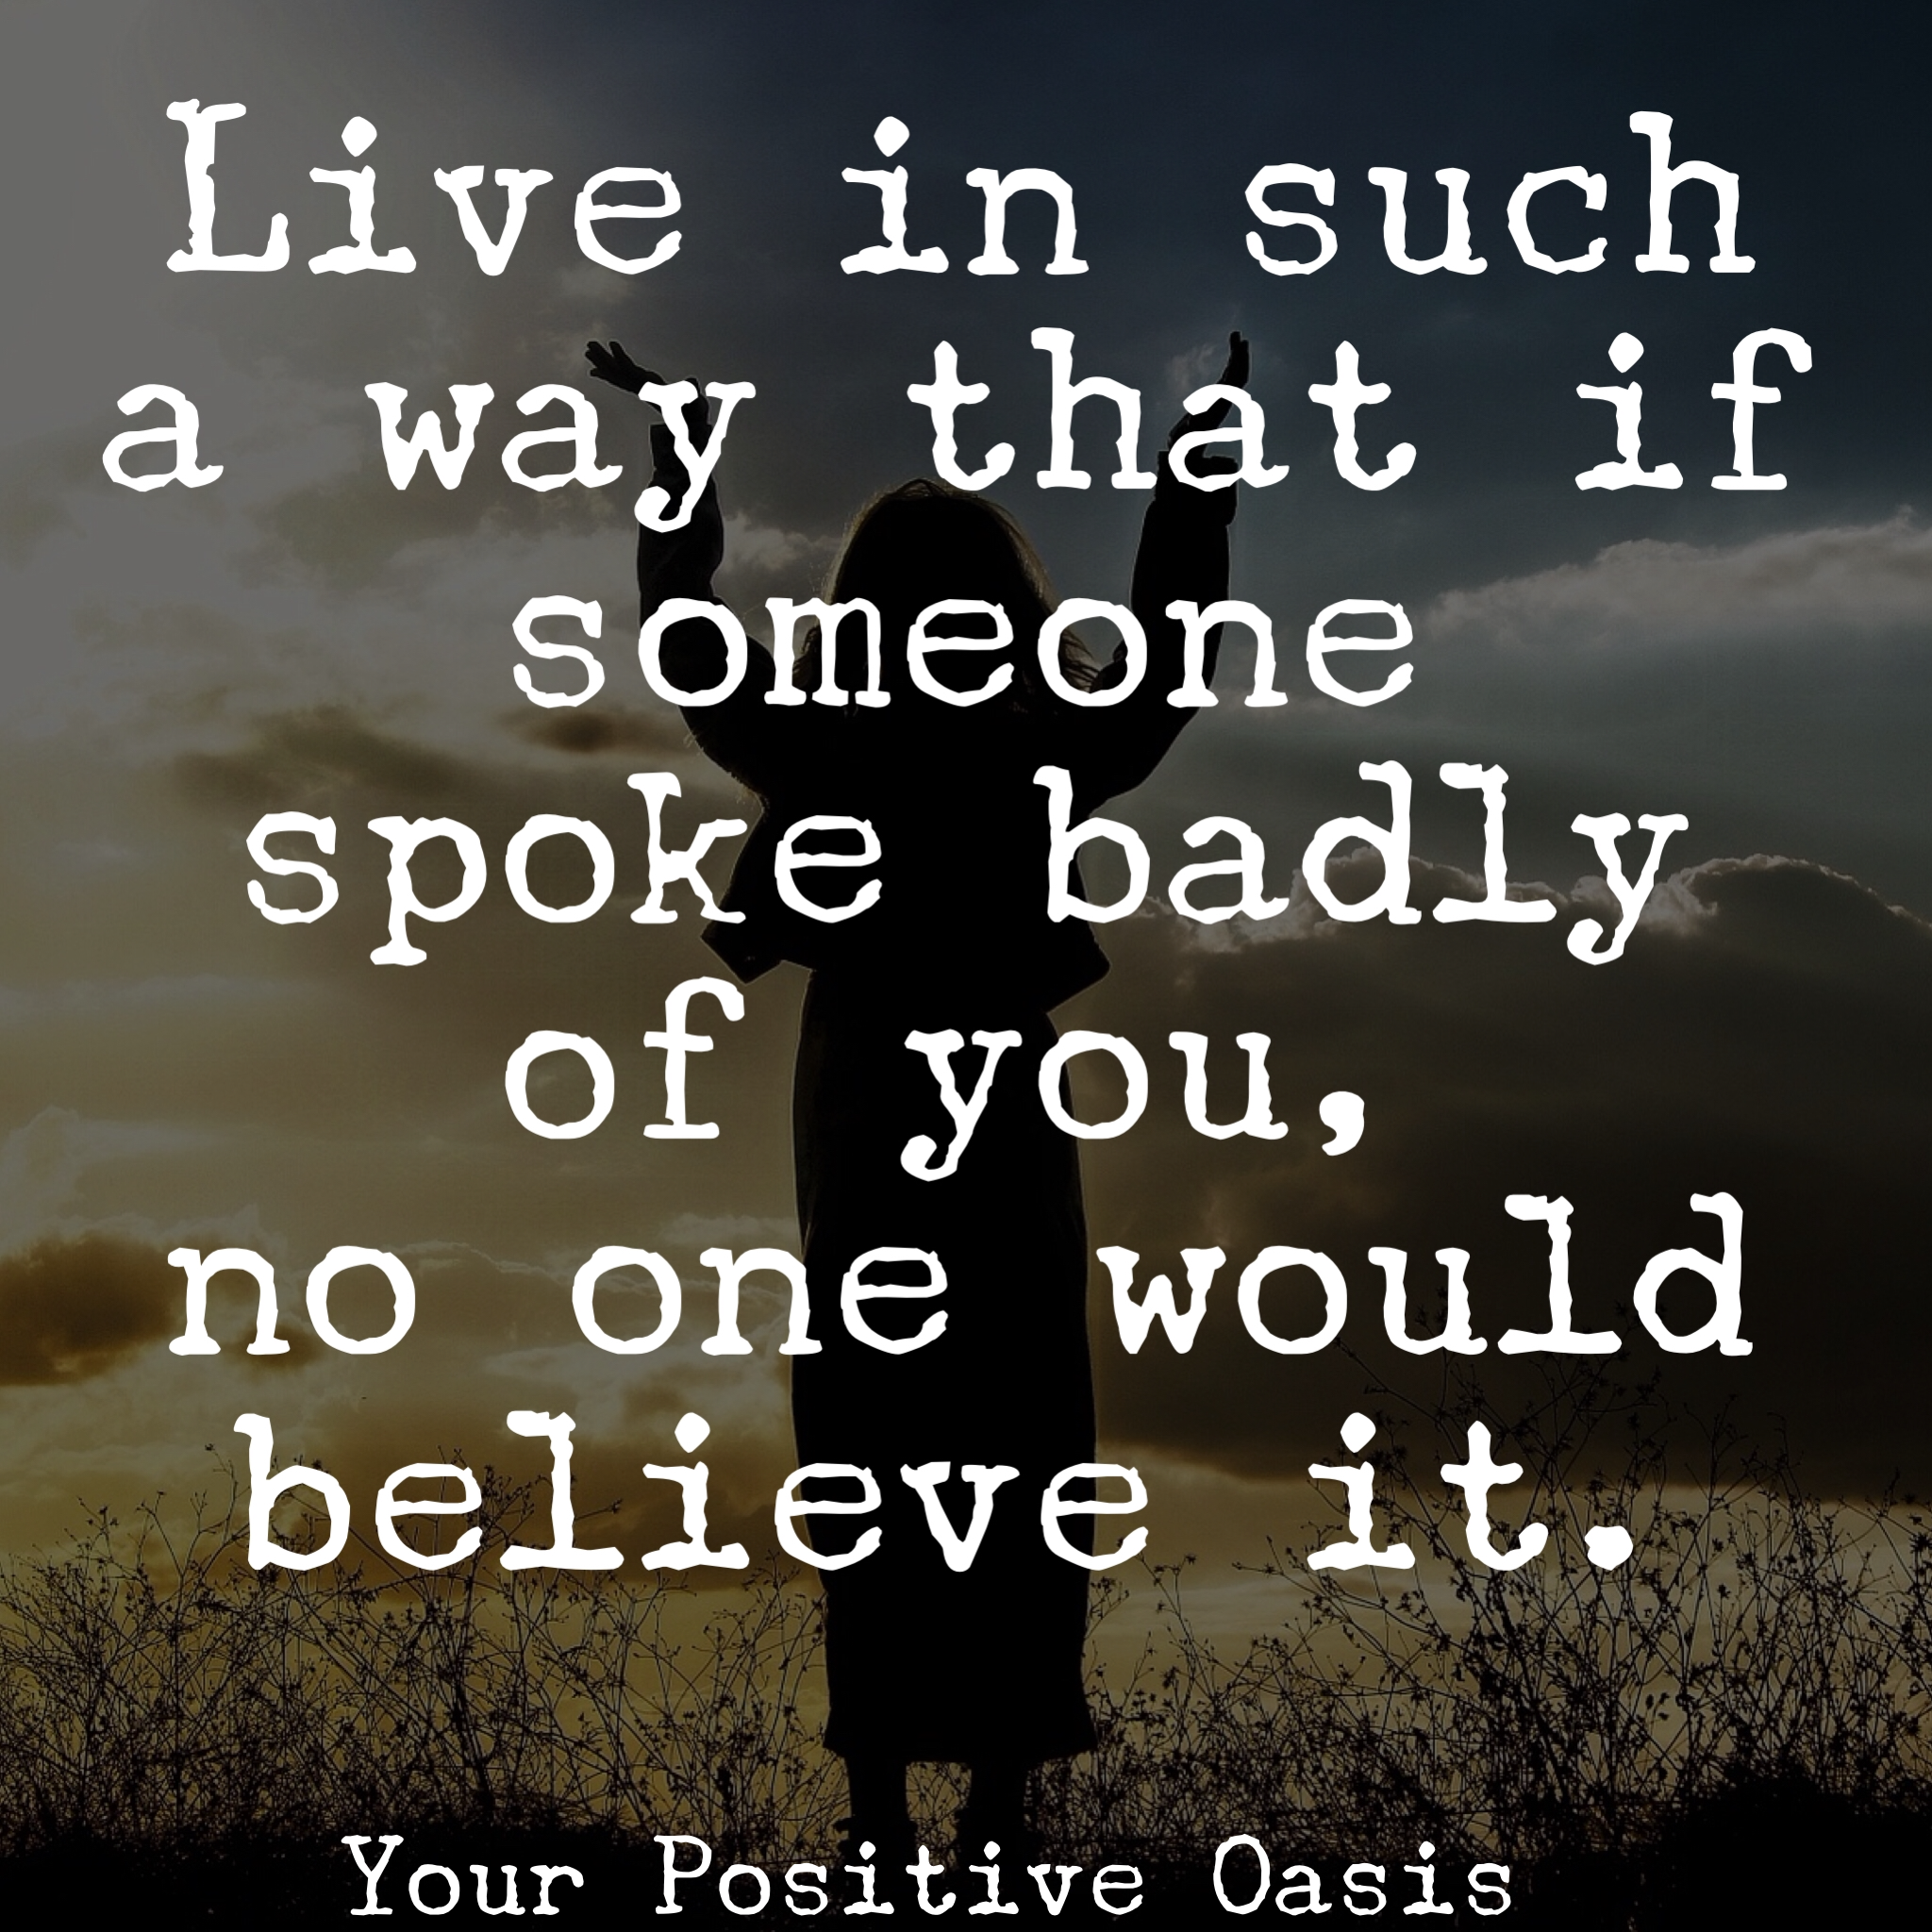 Positive Quotes Images 25 Inspiring And Positive Quotes